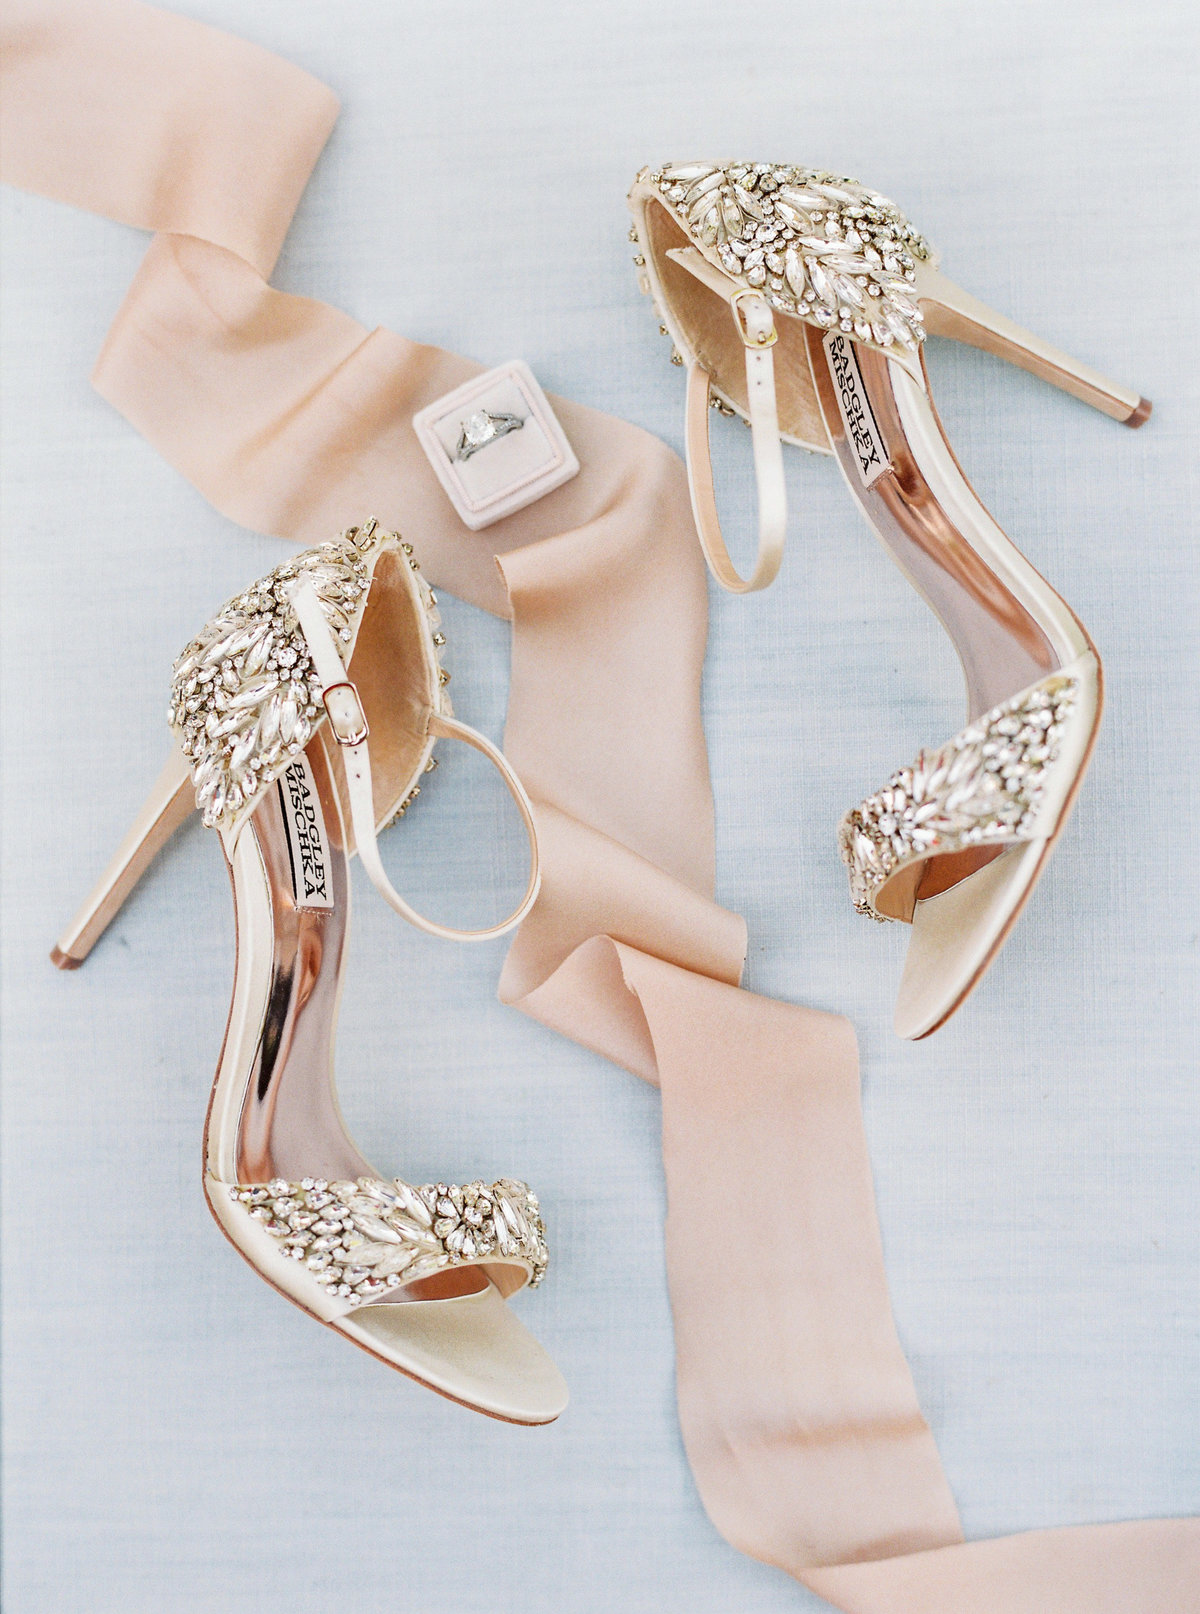 blush wedding shoes with crystals